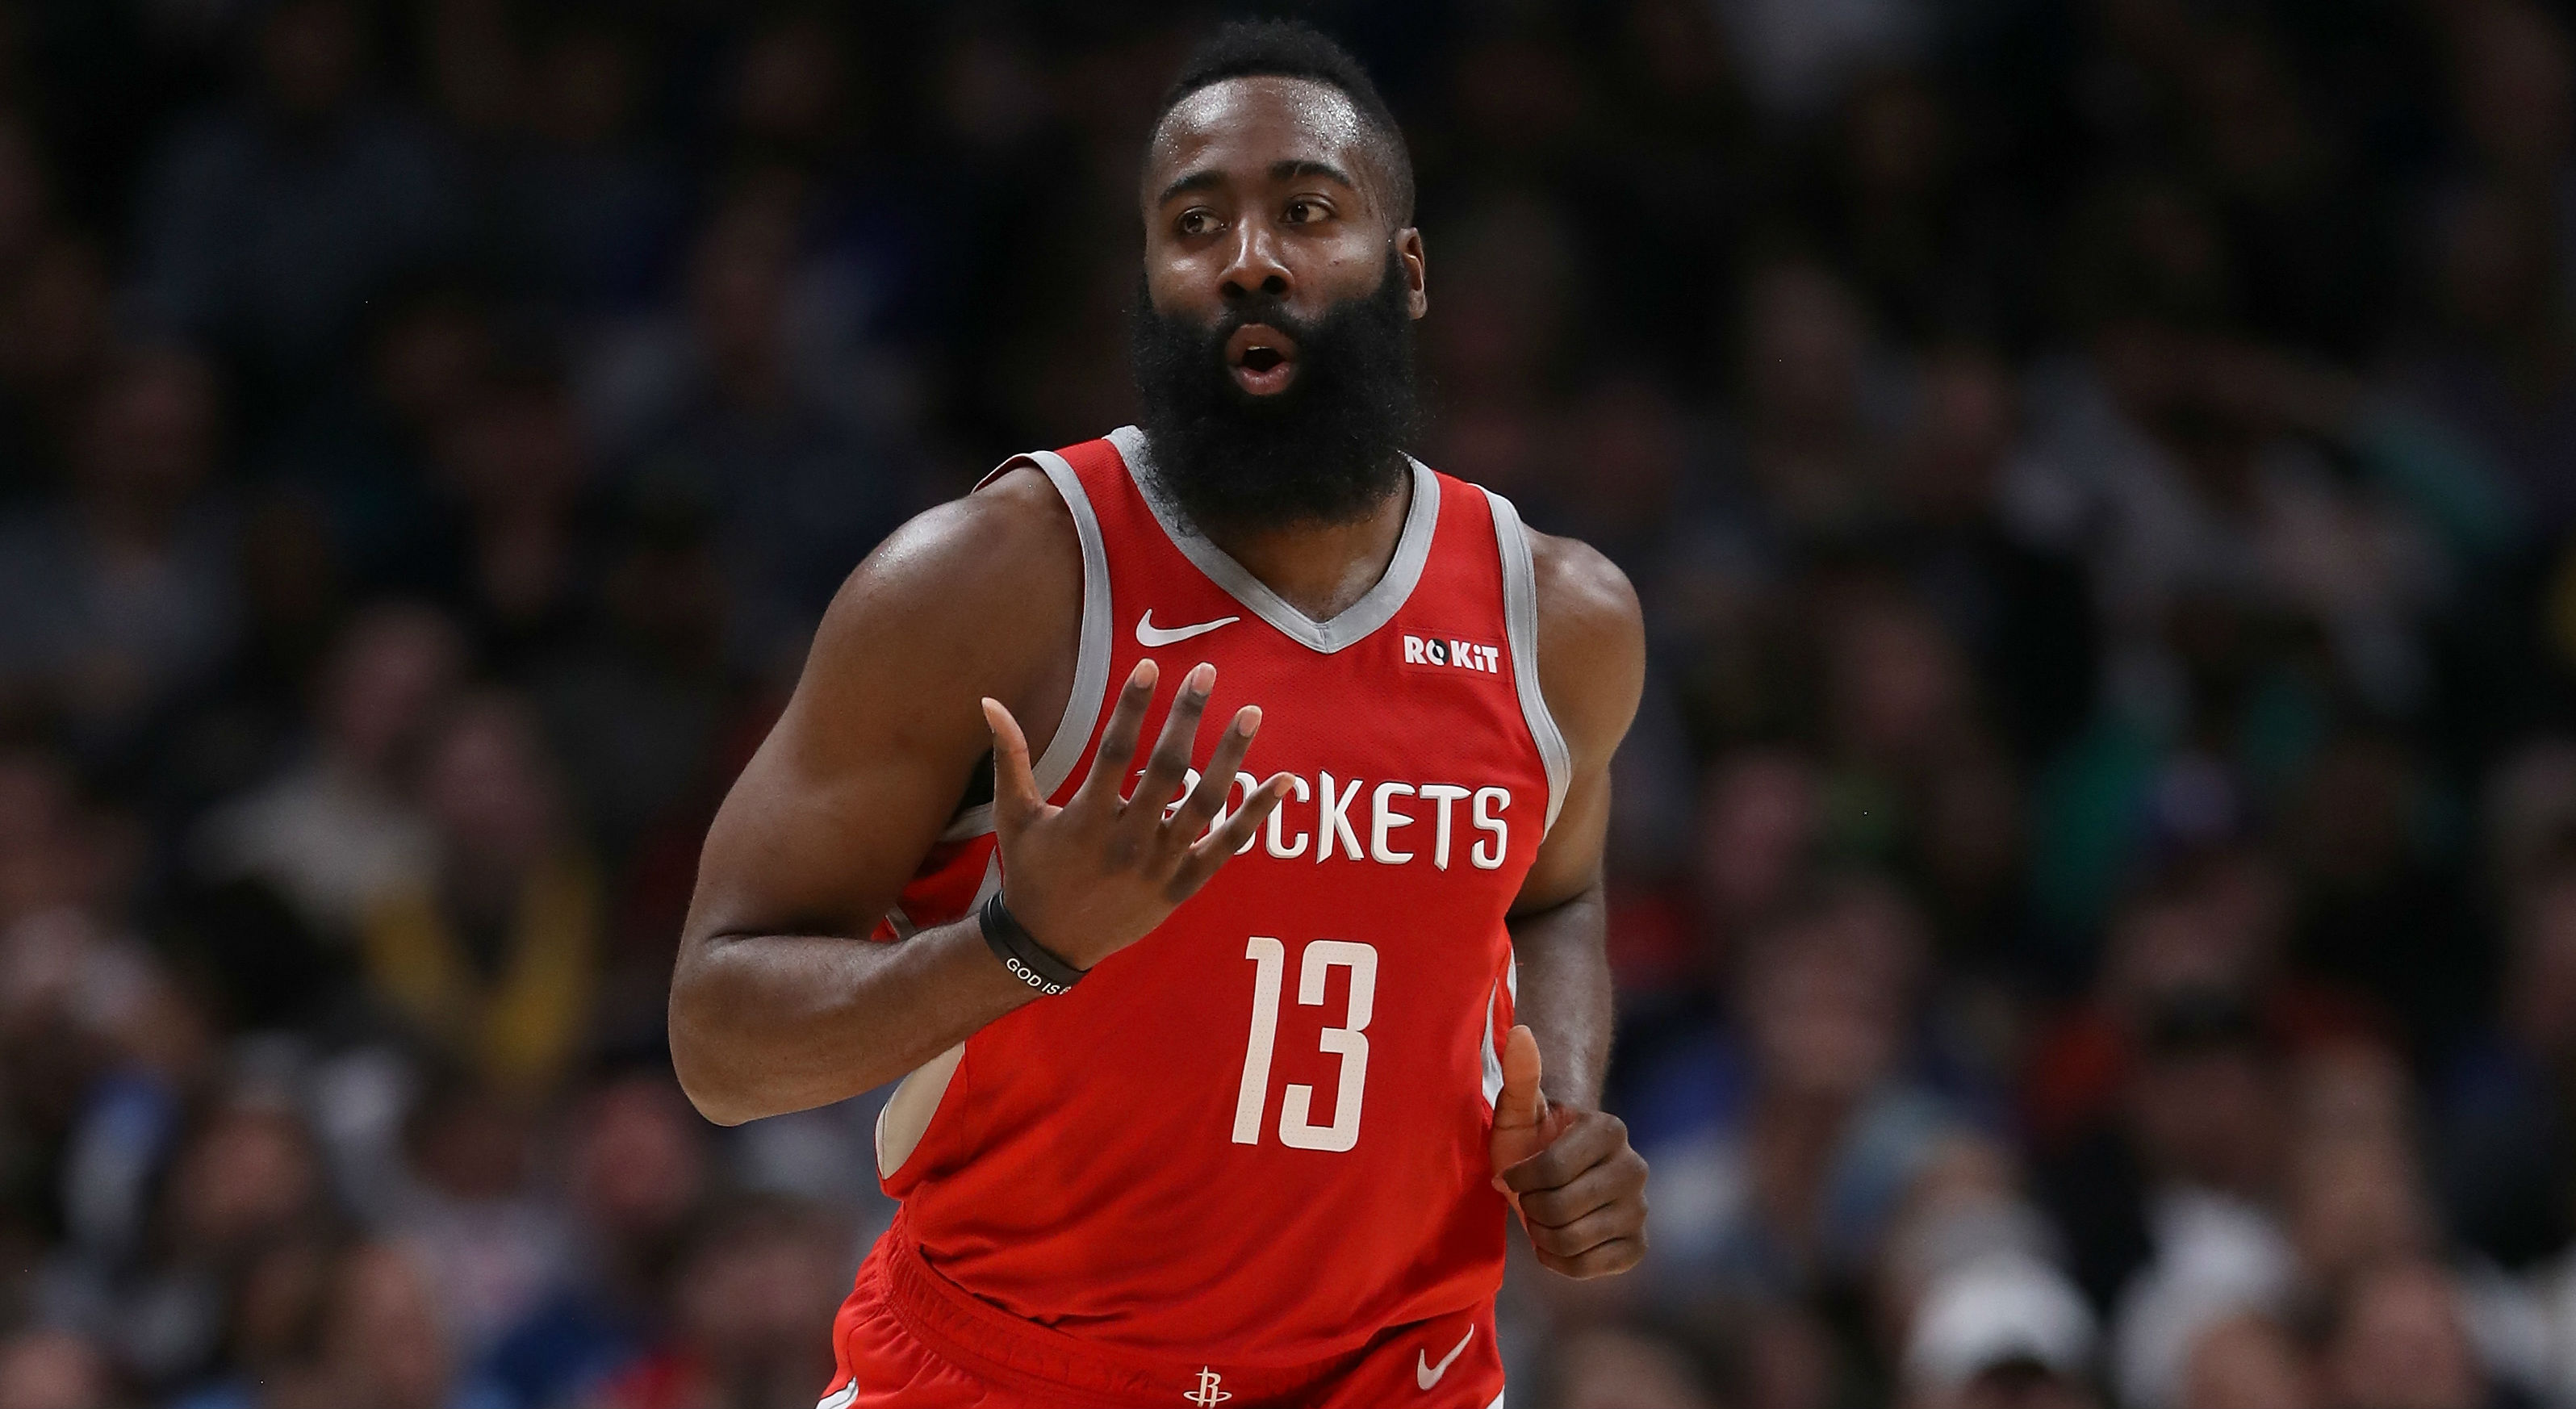 Houston Rockets: James Harden must produce in the playoffs